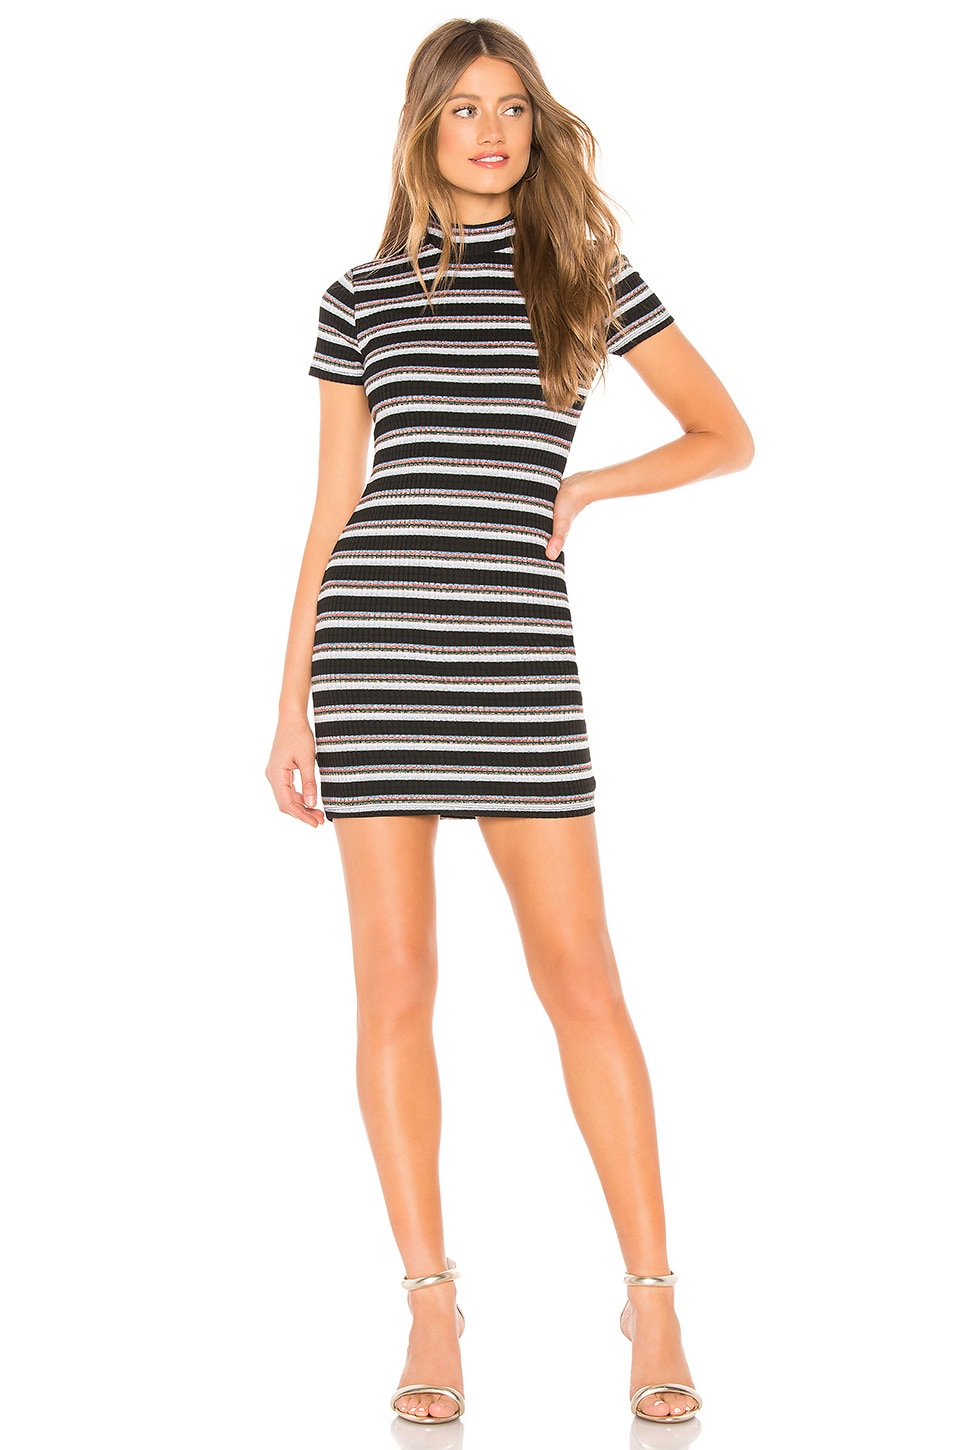 Privacy Please Camden Mini Dress in Metallic Stripe